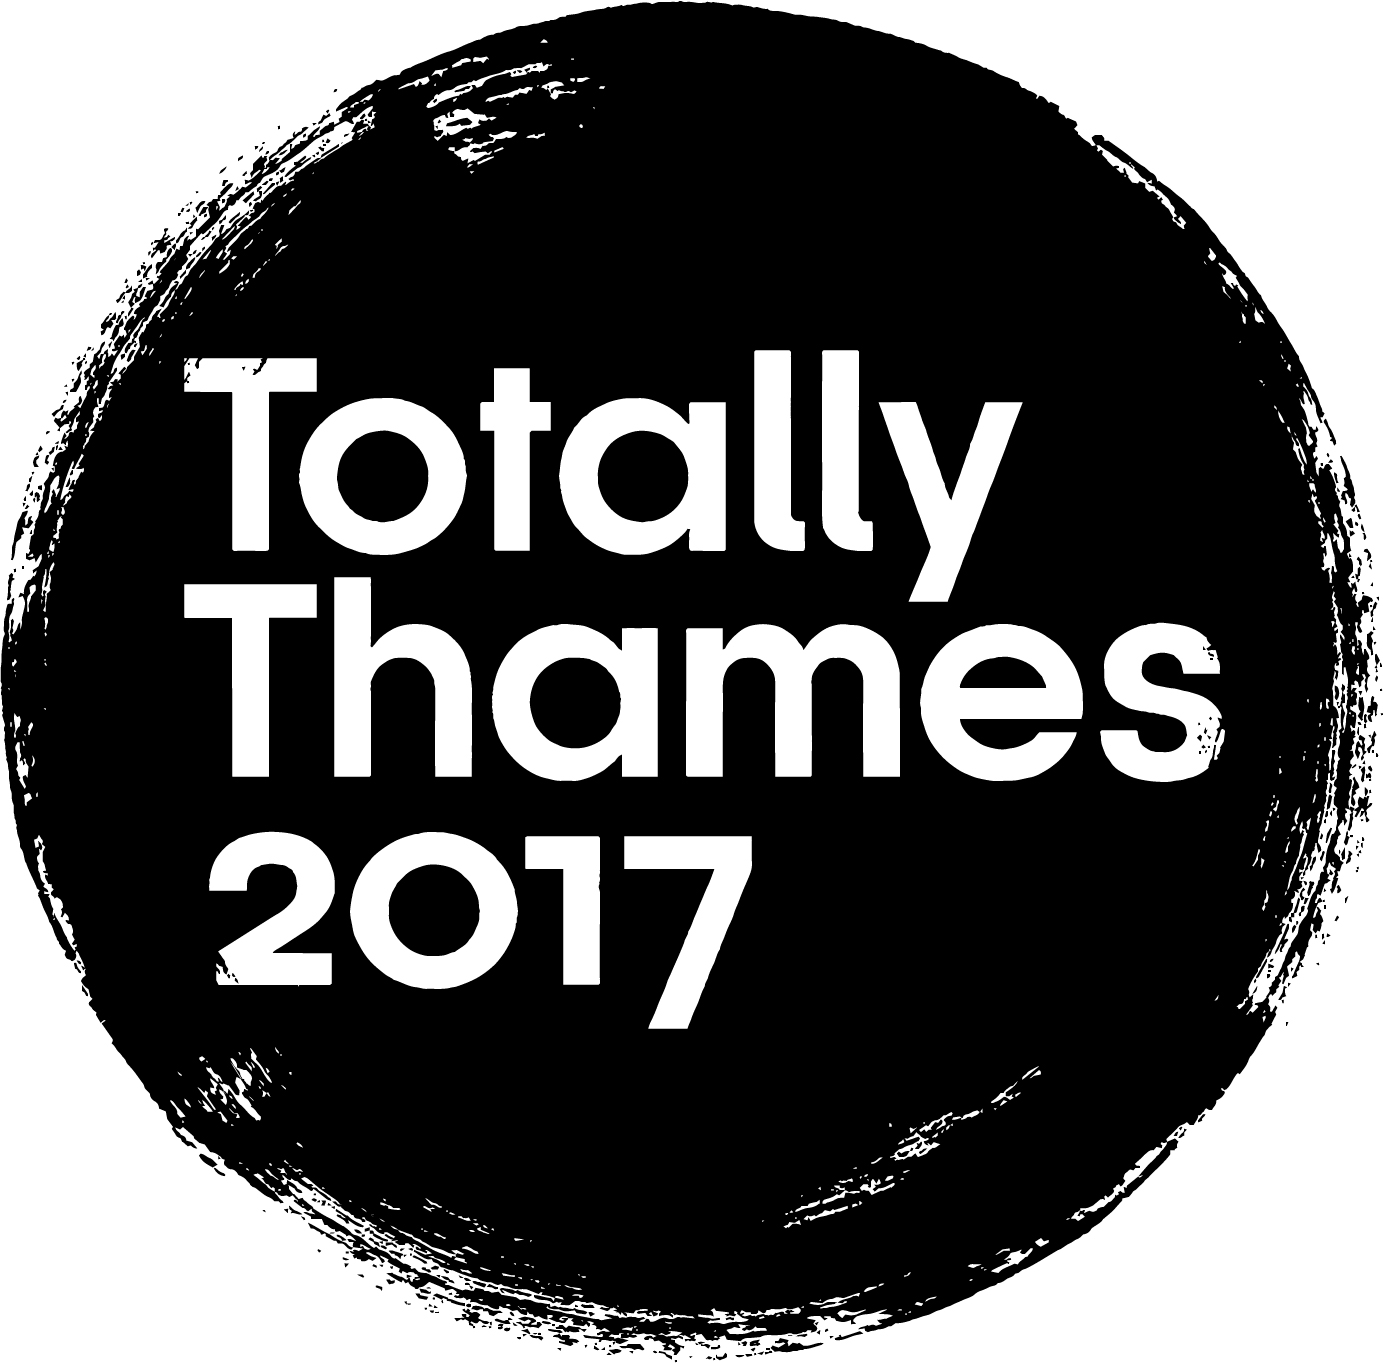 Totally Thames 2017 logo black.jpg